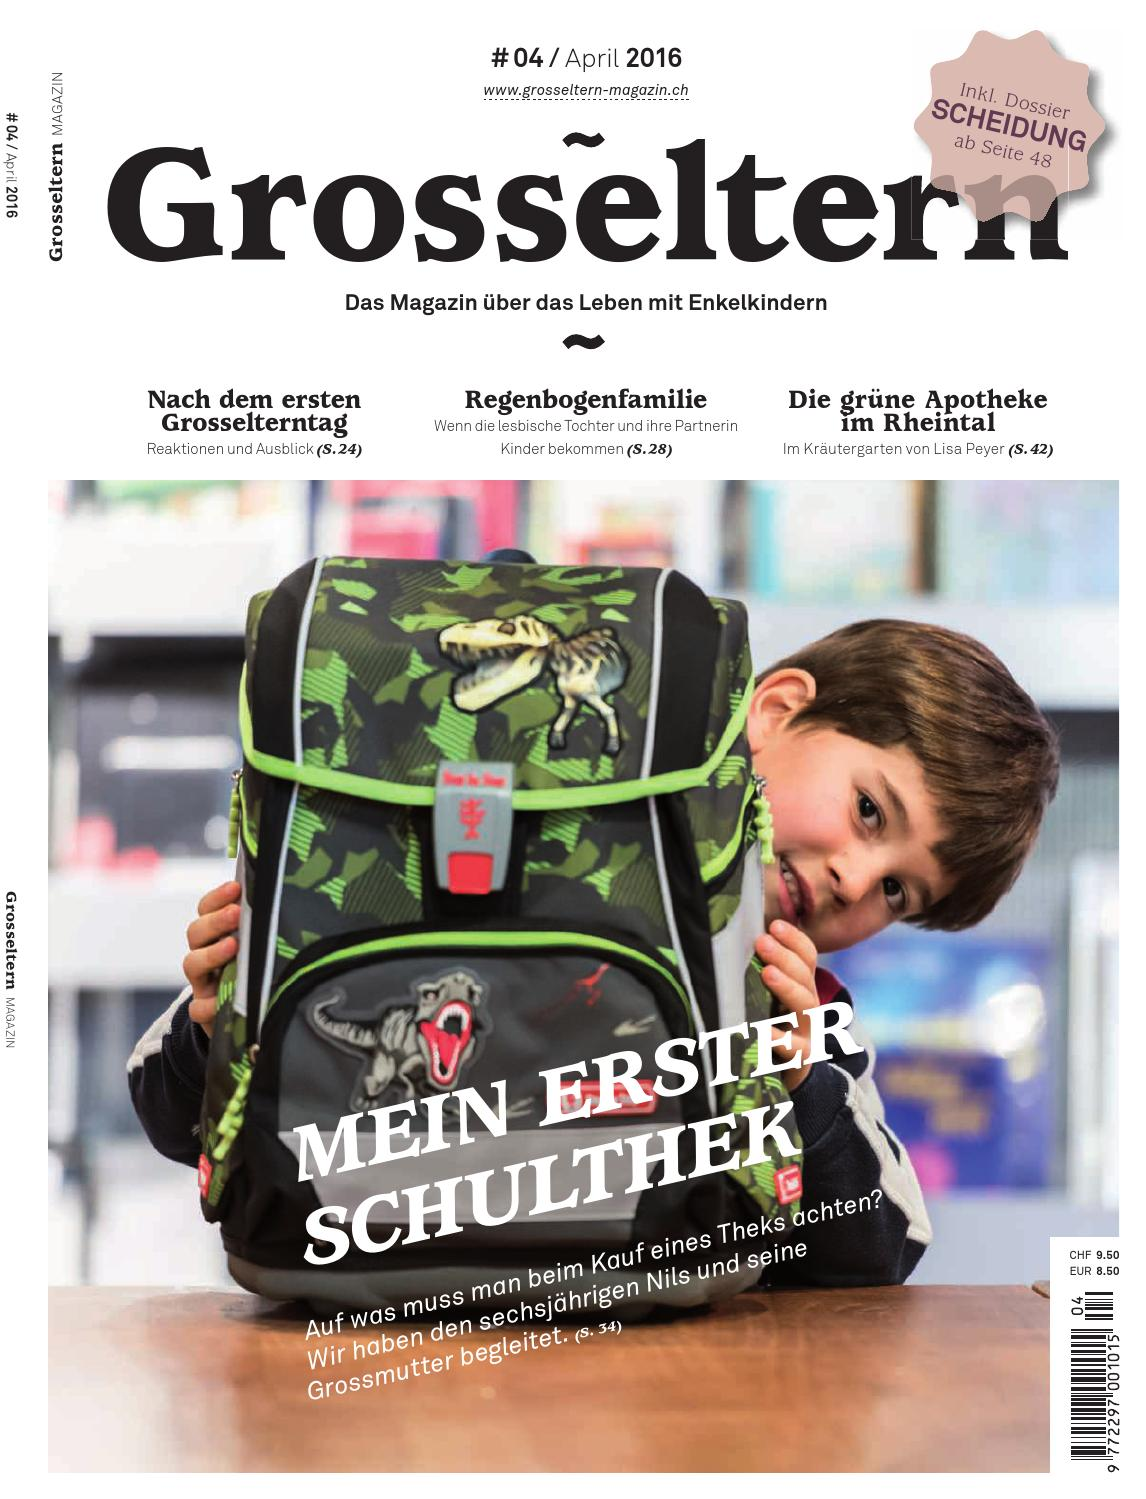 Grosseltern 04 2016 by Grosseltern-Magazin - issuu